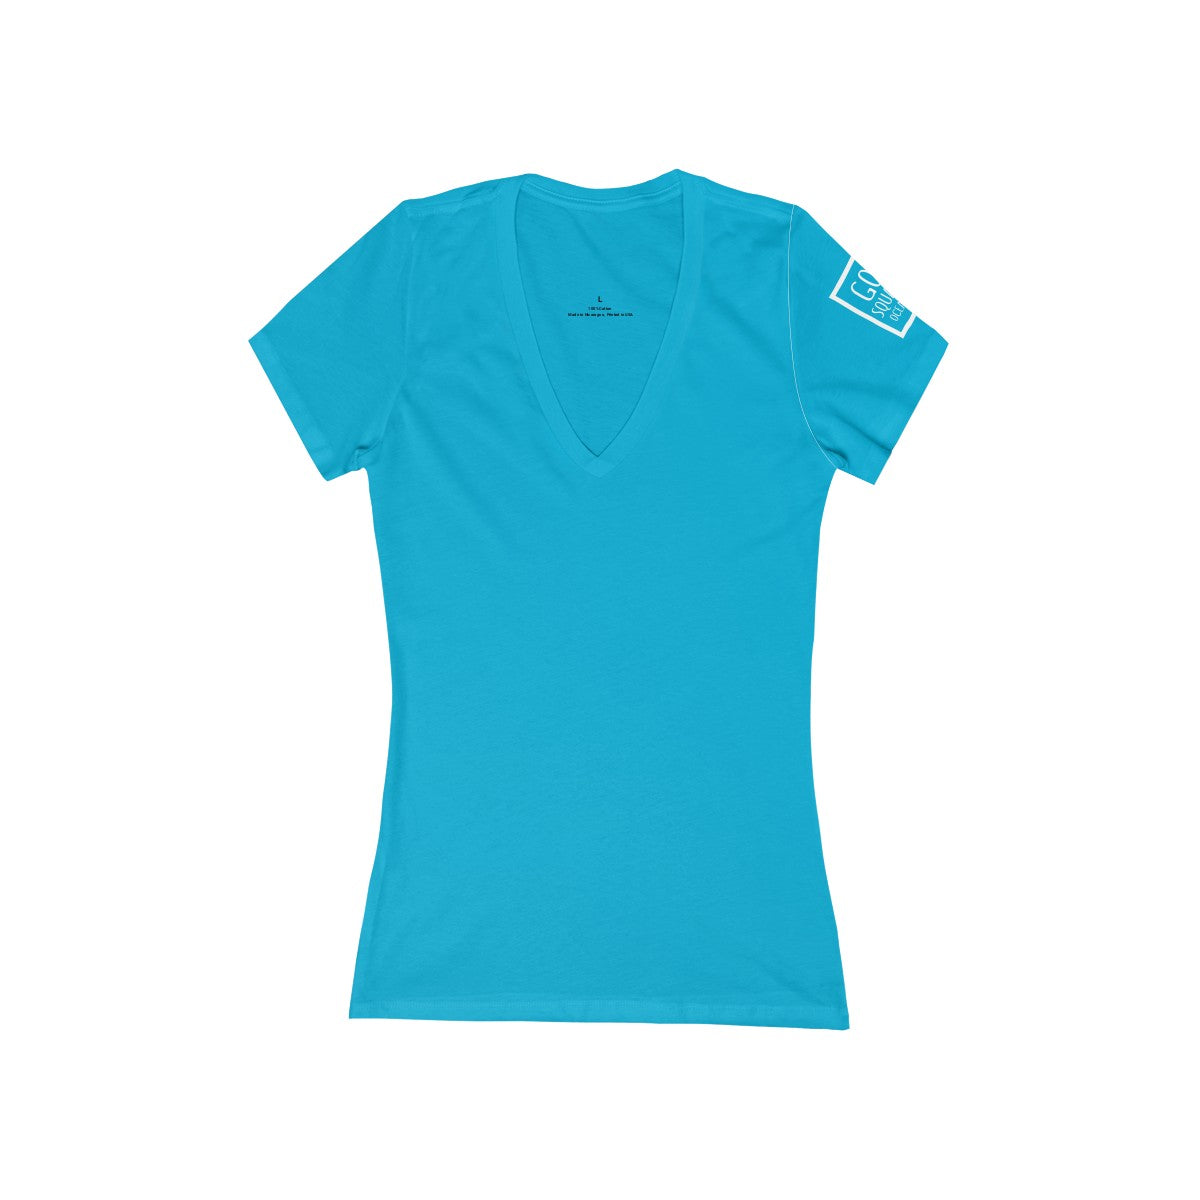 Grover Ladies Short Sleeve Fitted V-Neck Tee